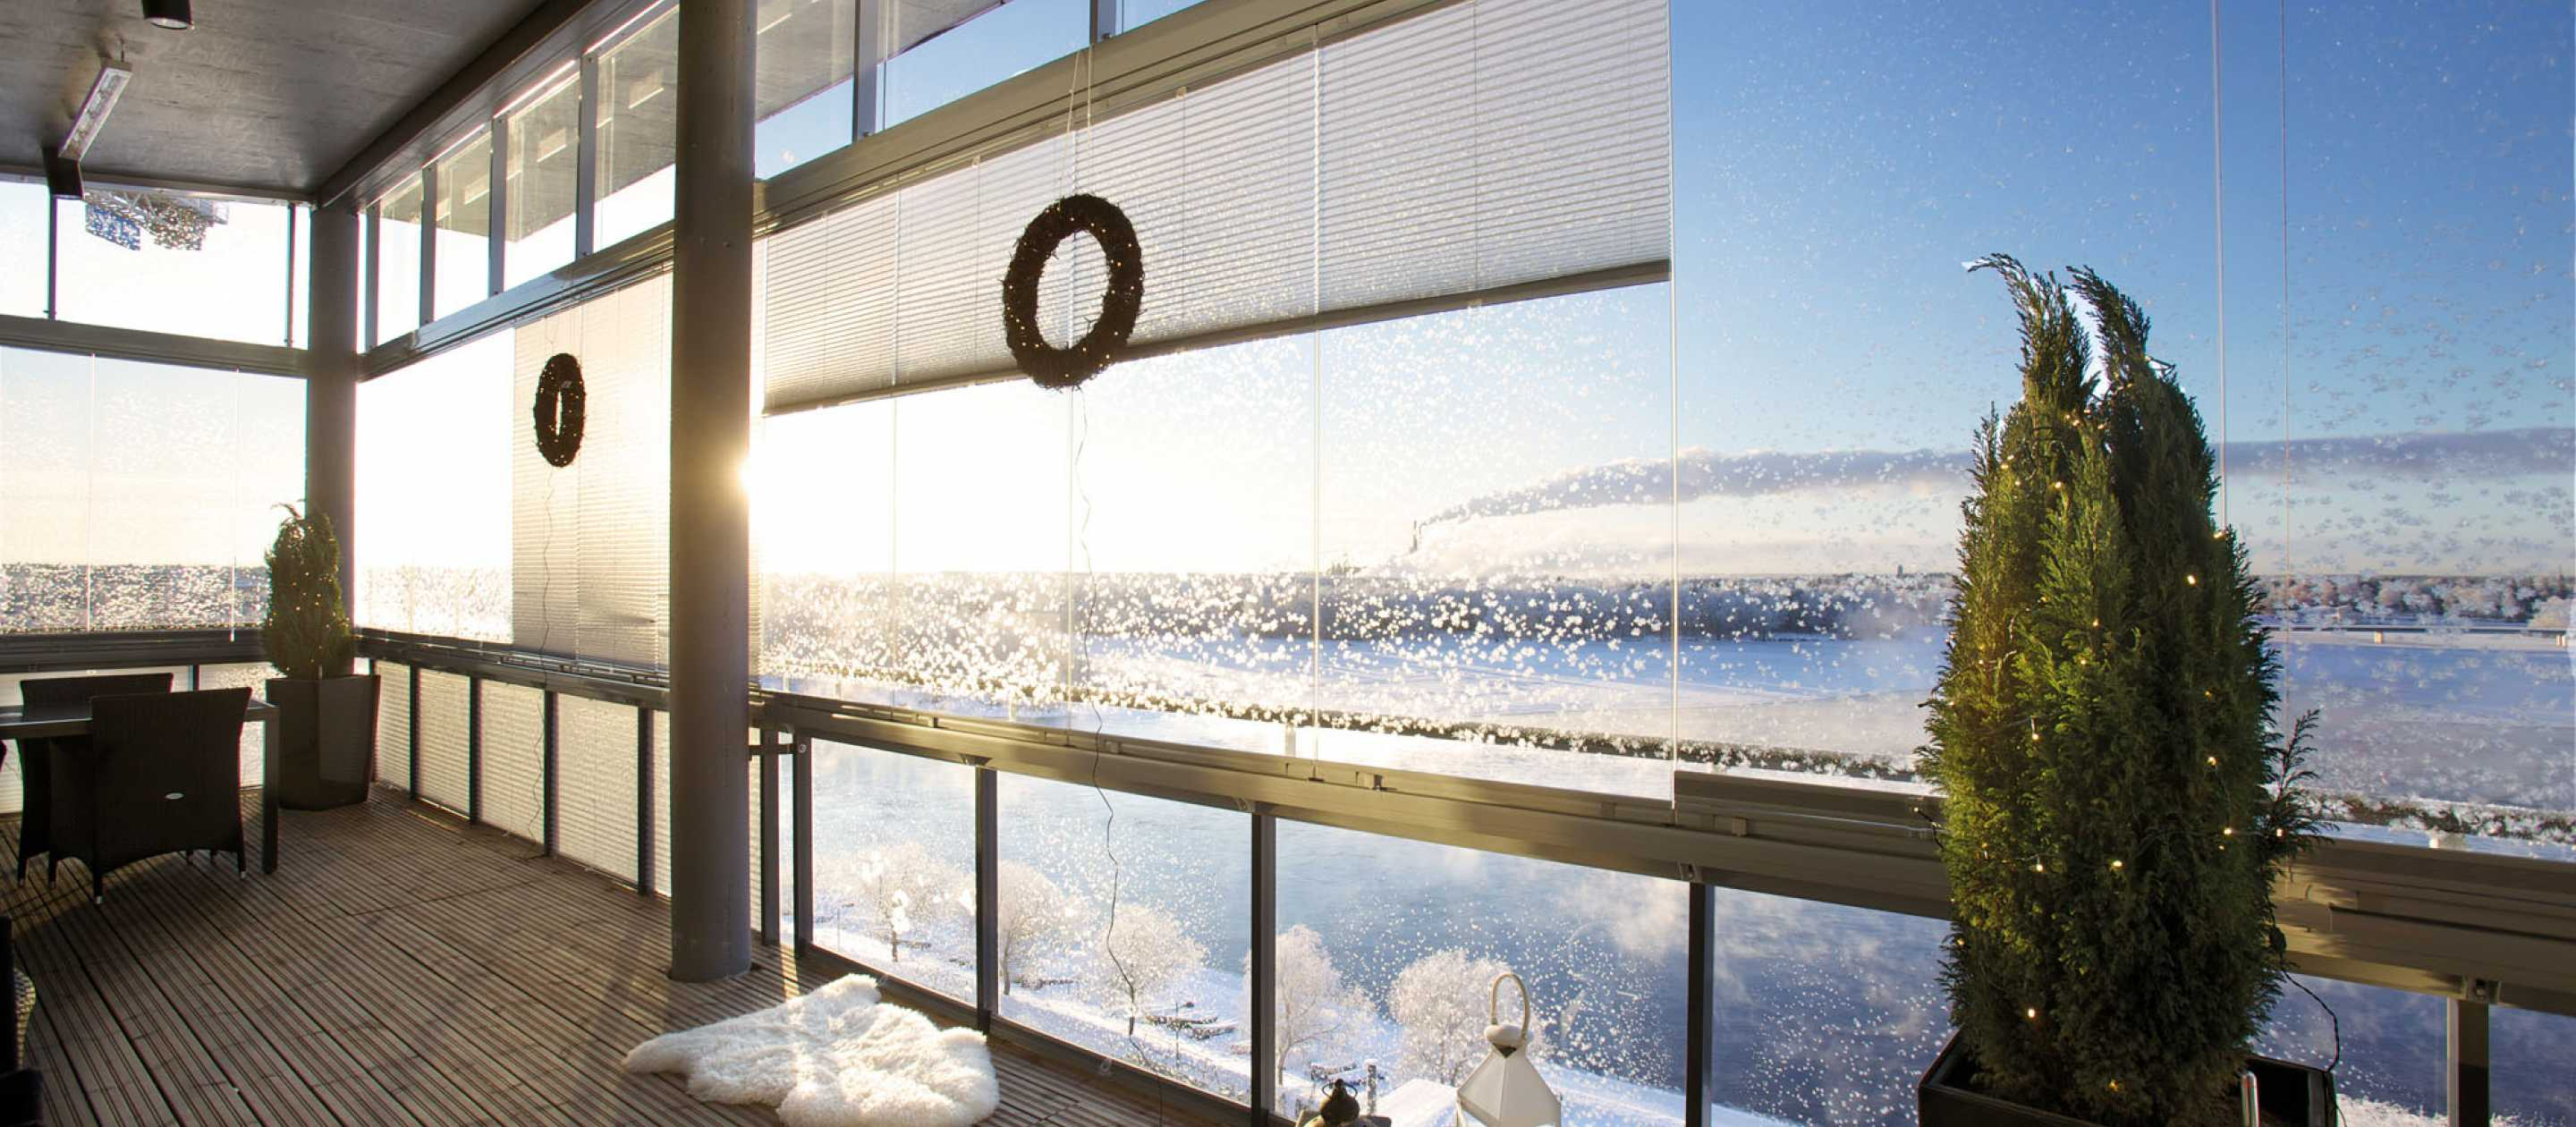 screens, insect screens for the outdoors, insect screens, screens for sunrooms, quality screens, quality shades, quality blinds, shades for windows